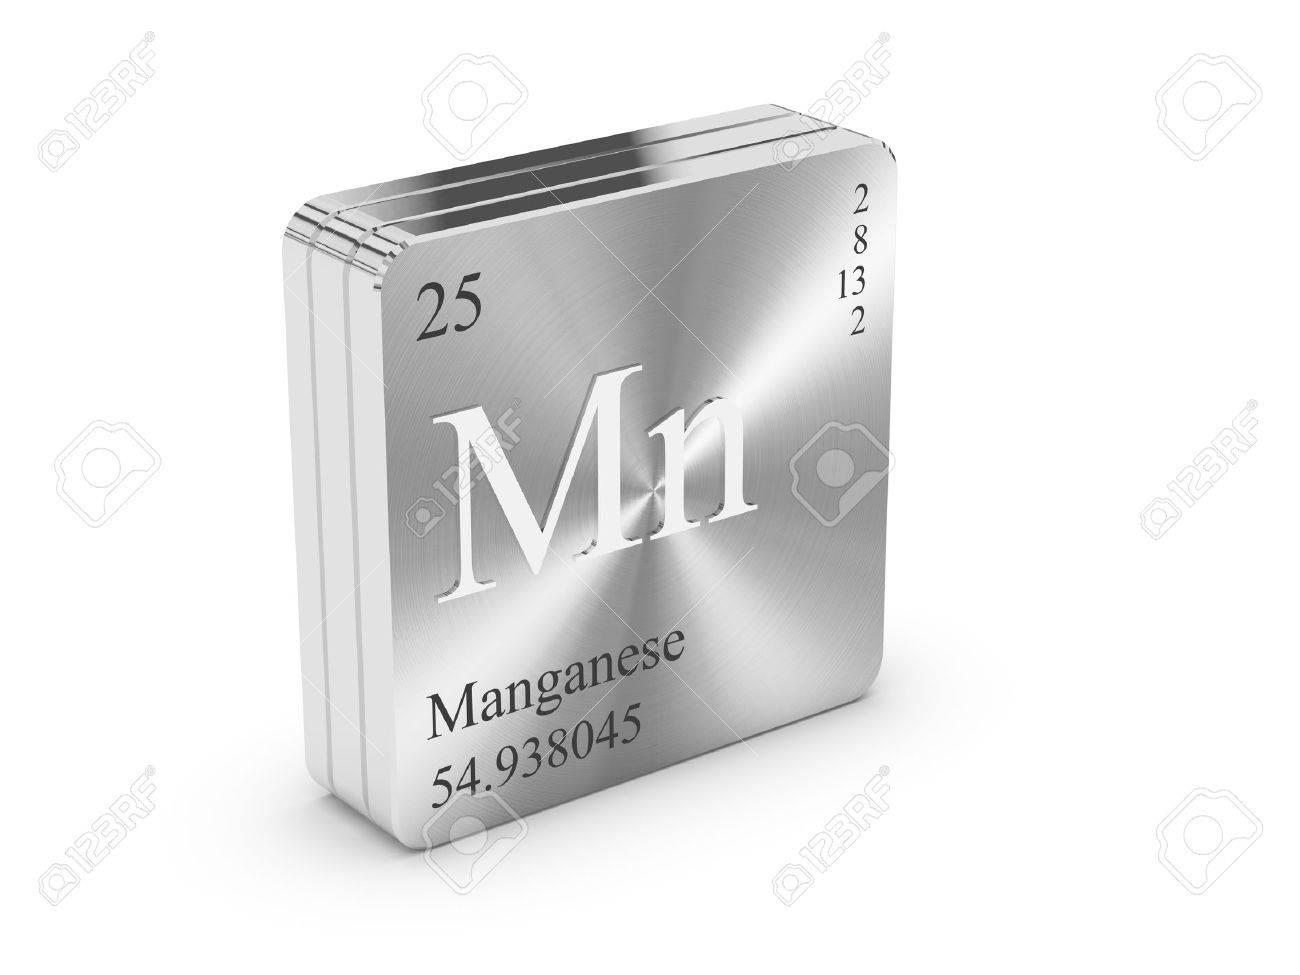 Manganese element of the periodic table on metal steel block manganese element of the periodic table on metal steel block stock photo 12083250 gamestrikefo Images